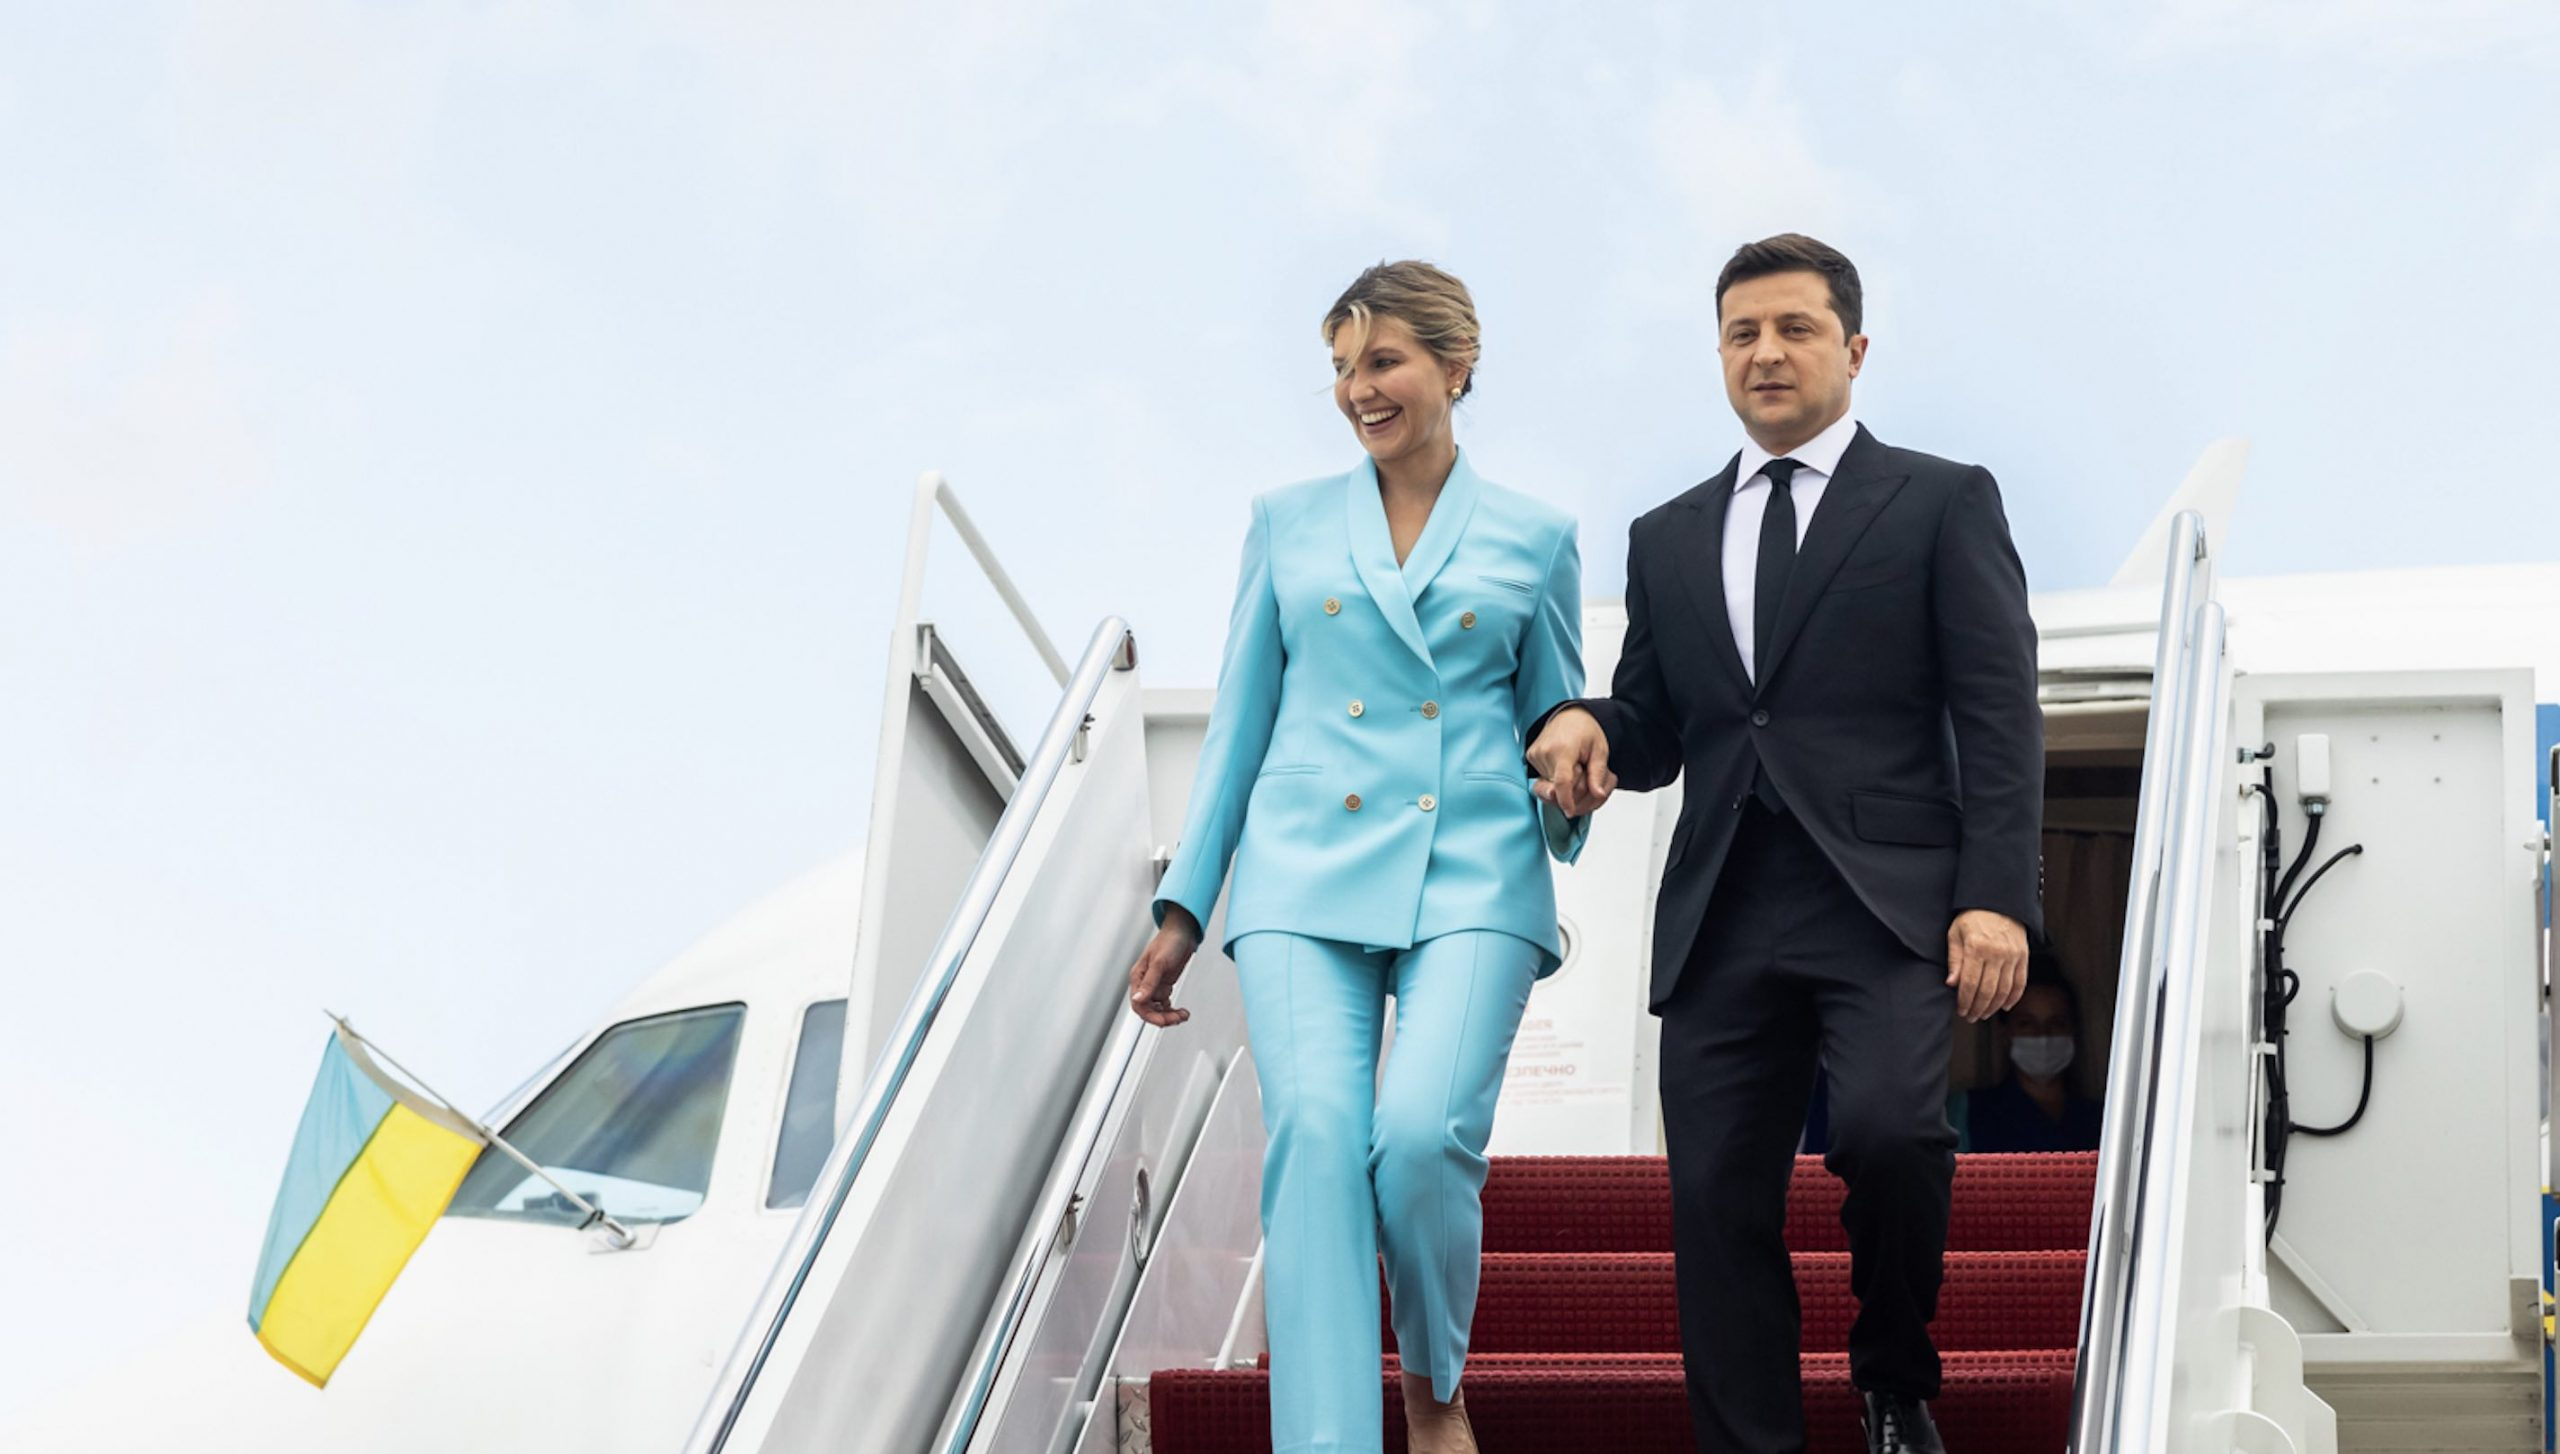 Image: President's visit to the United States. Credit: President of Ukraine.